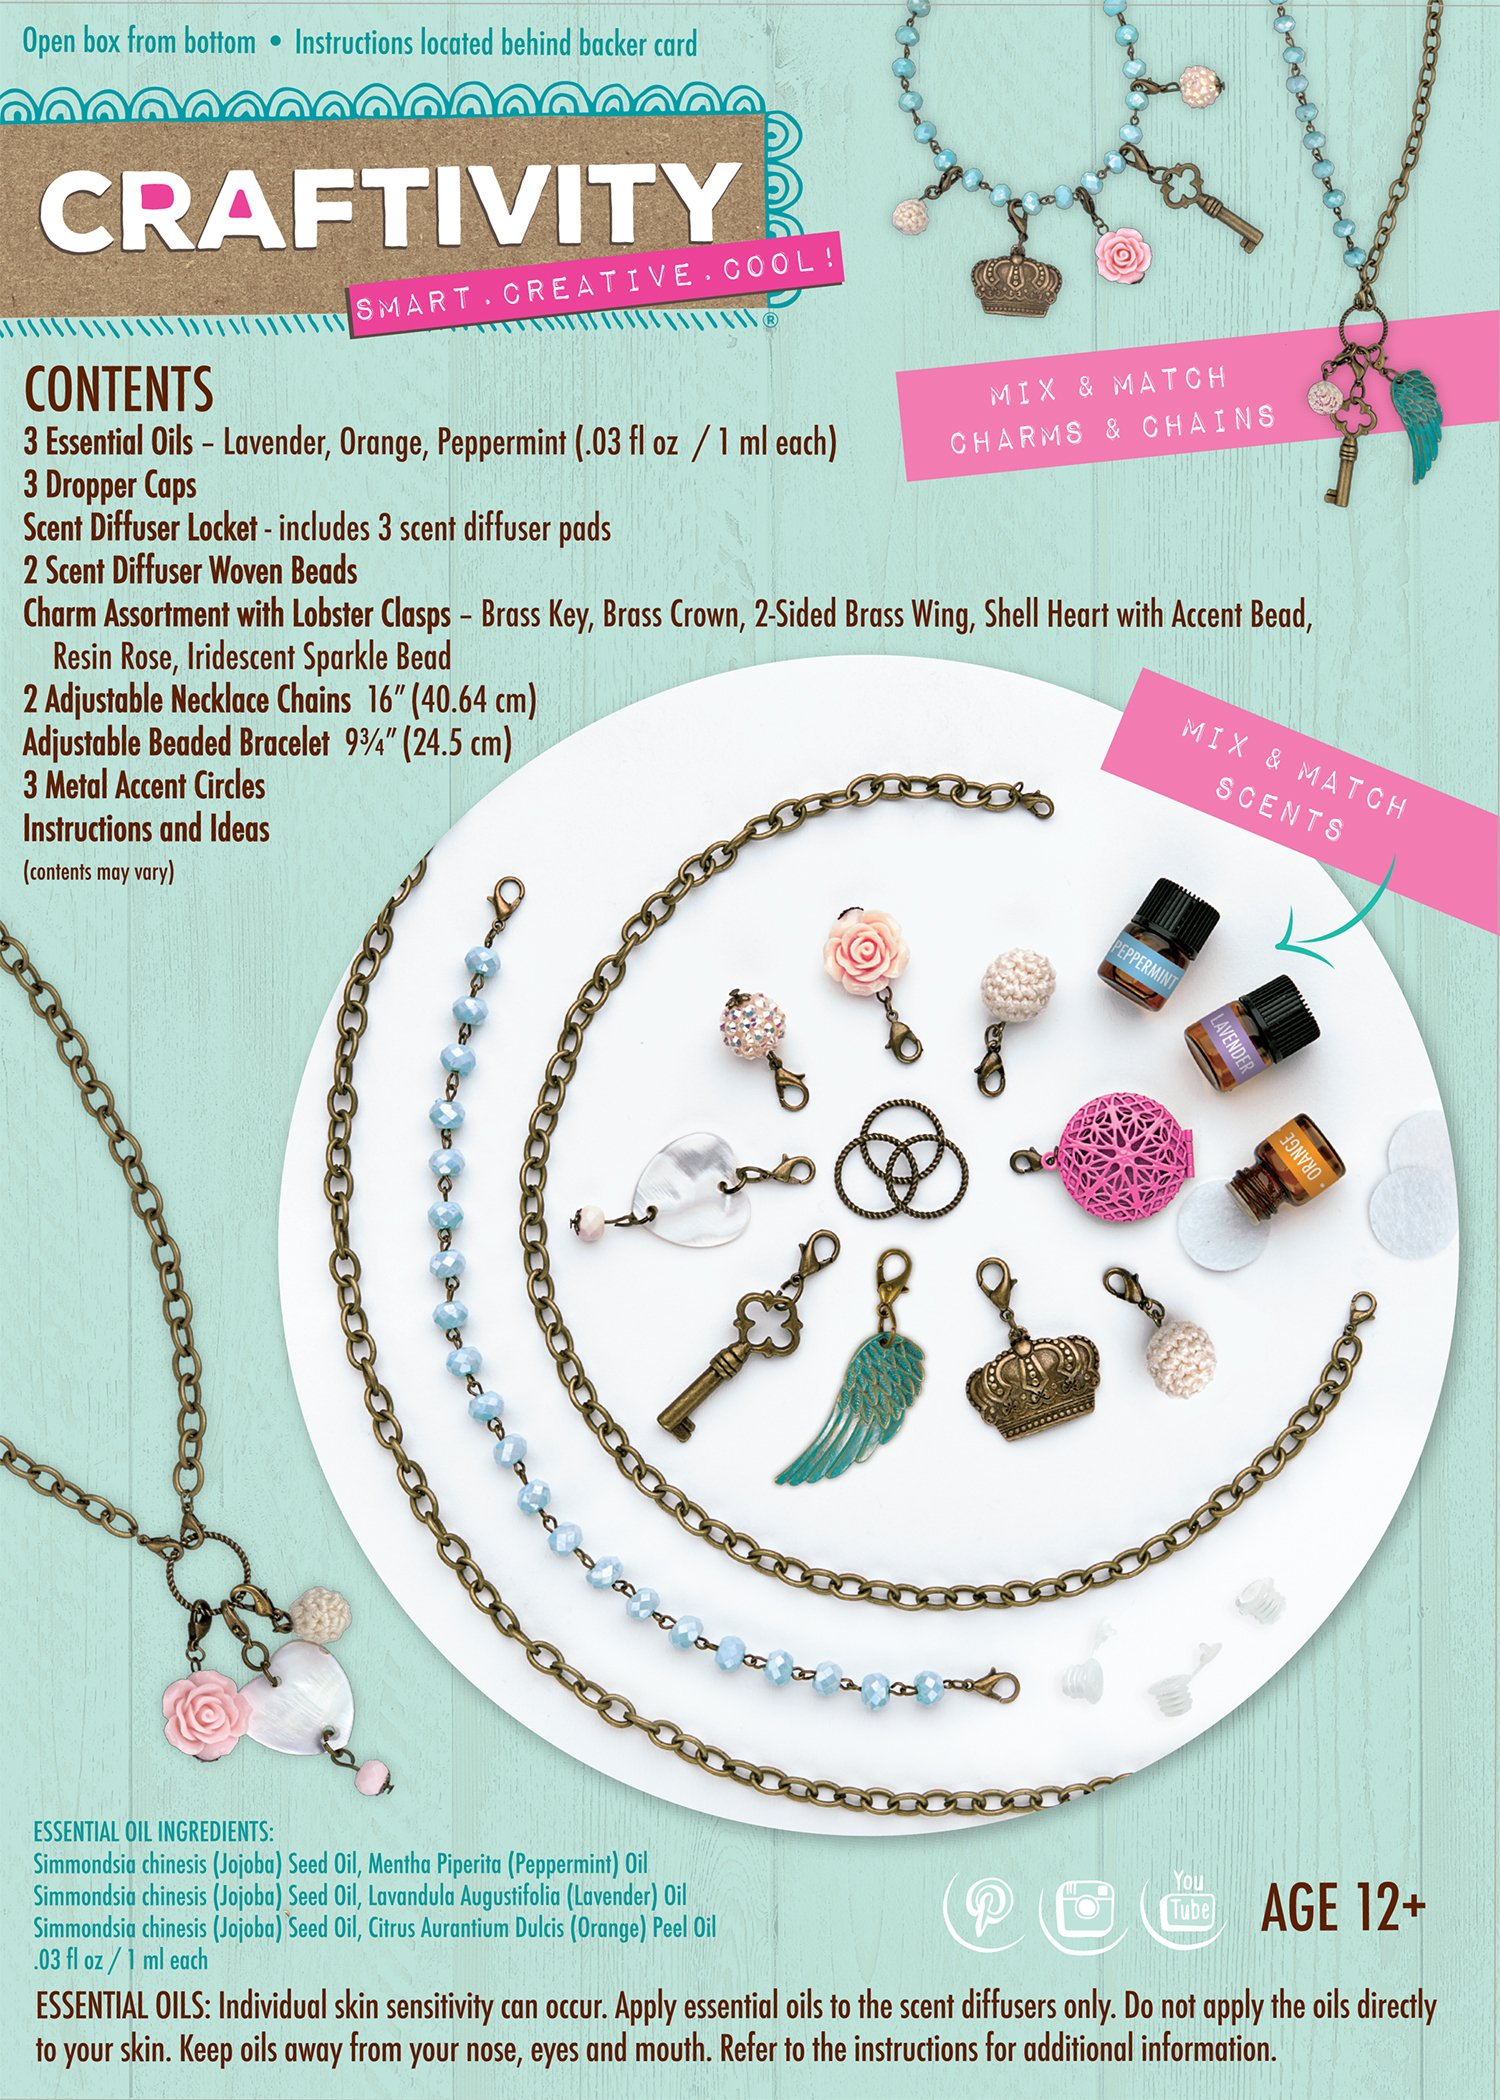 CRAFTIVITY AromaJewelry Lovely Lockets - Essential Oil Jewelry Making Kit by CRAFTIVITY (Image #2)